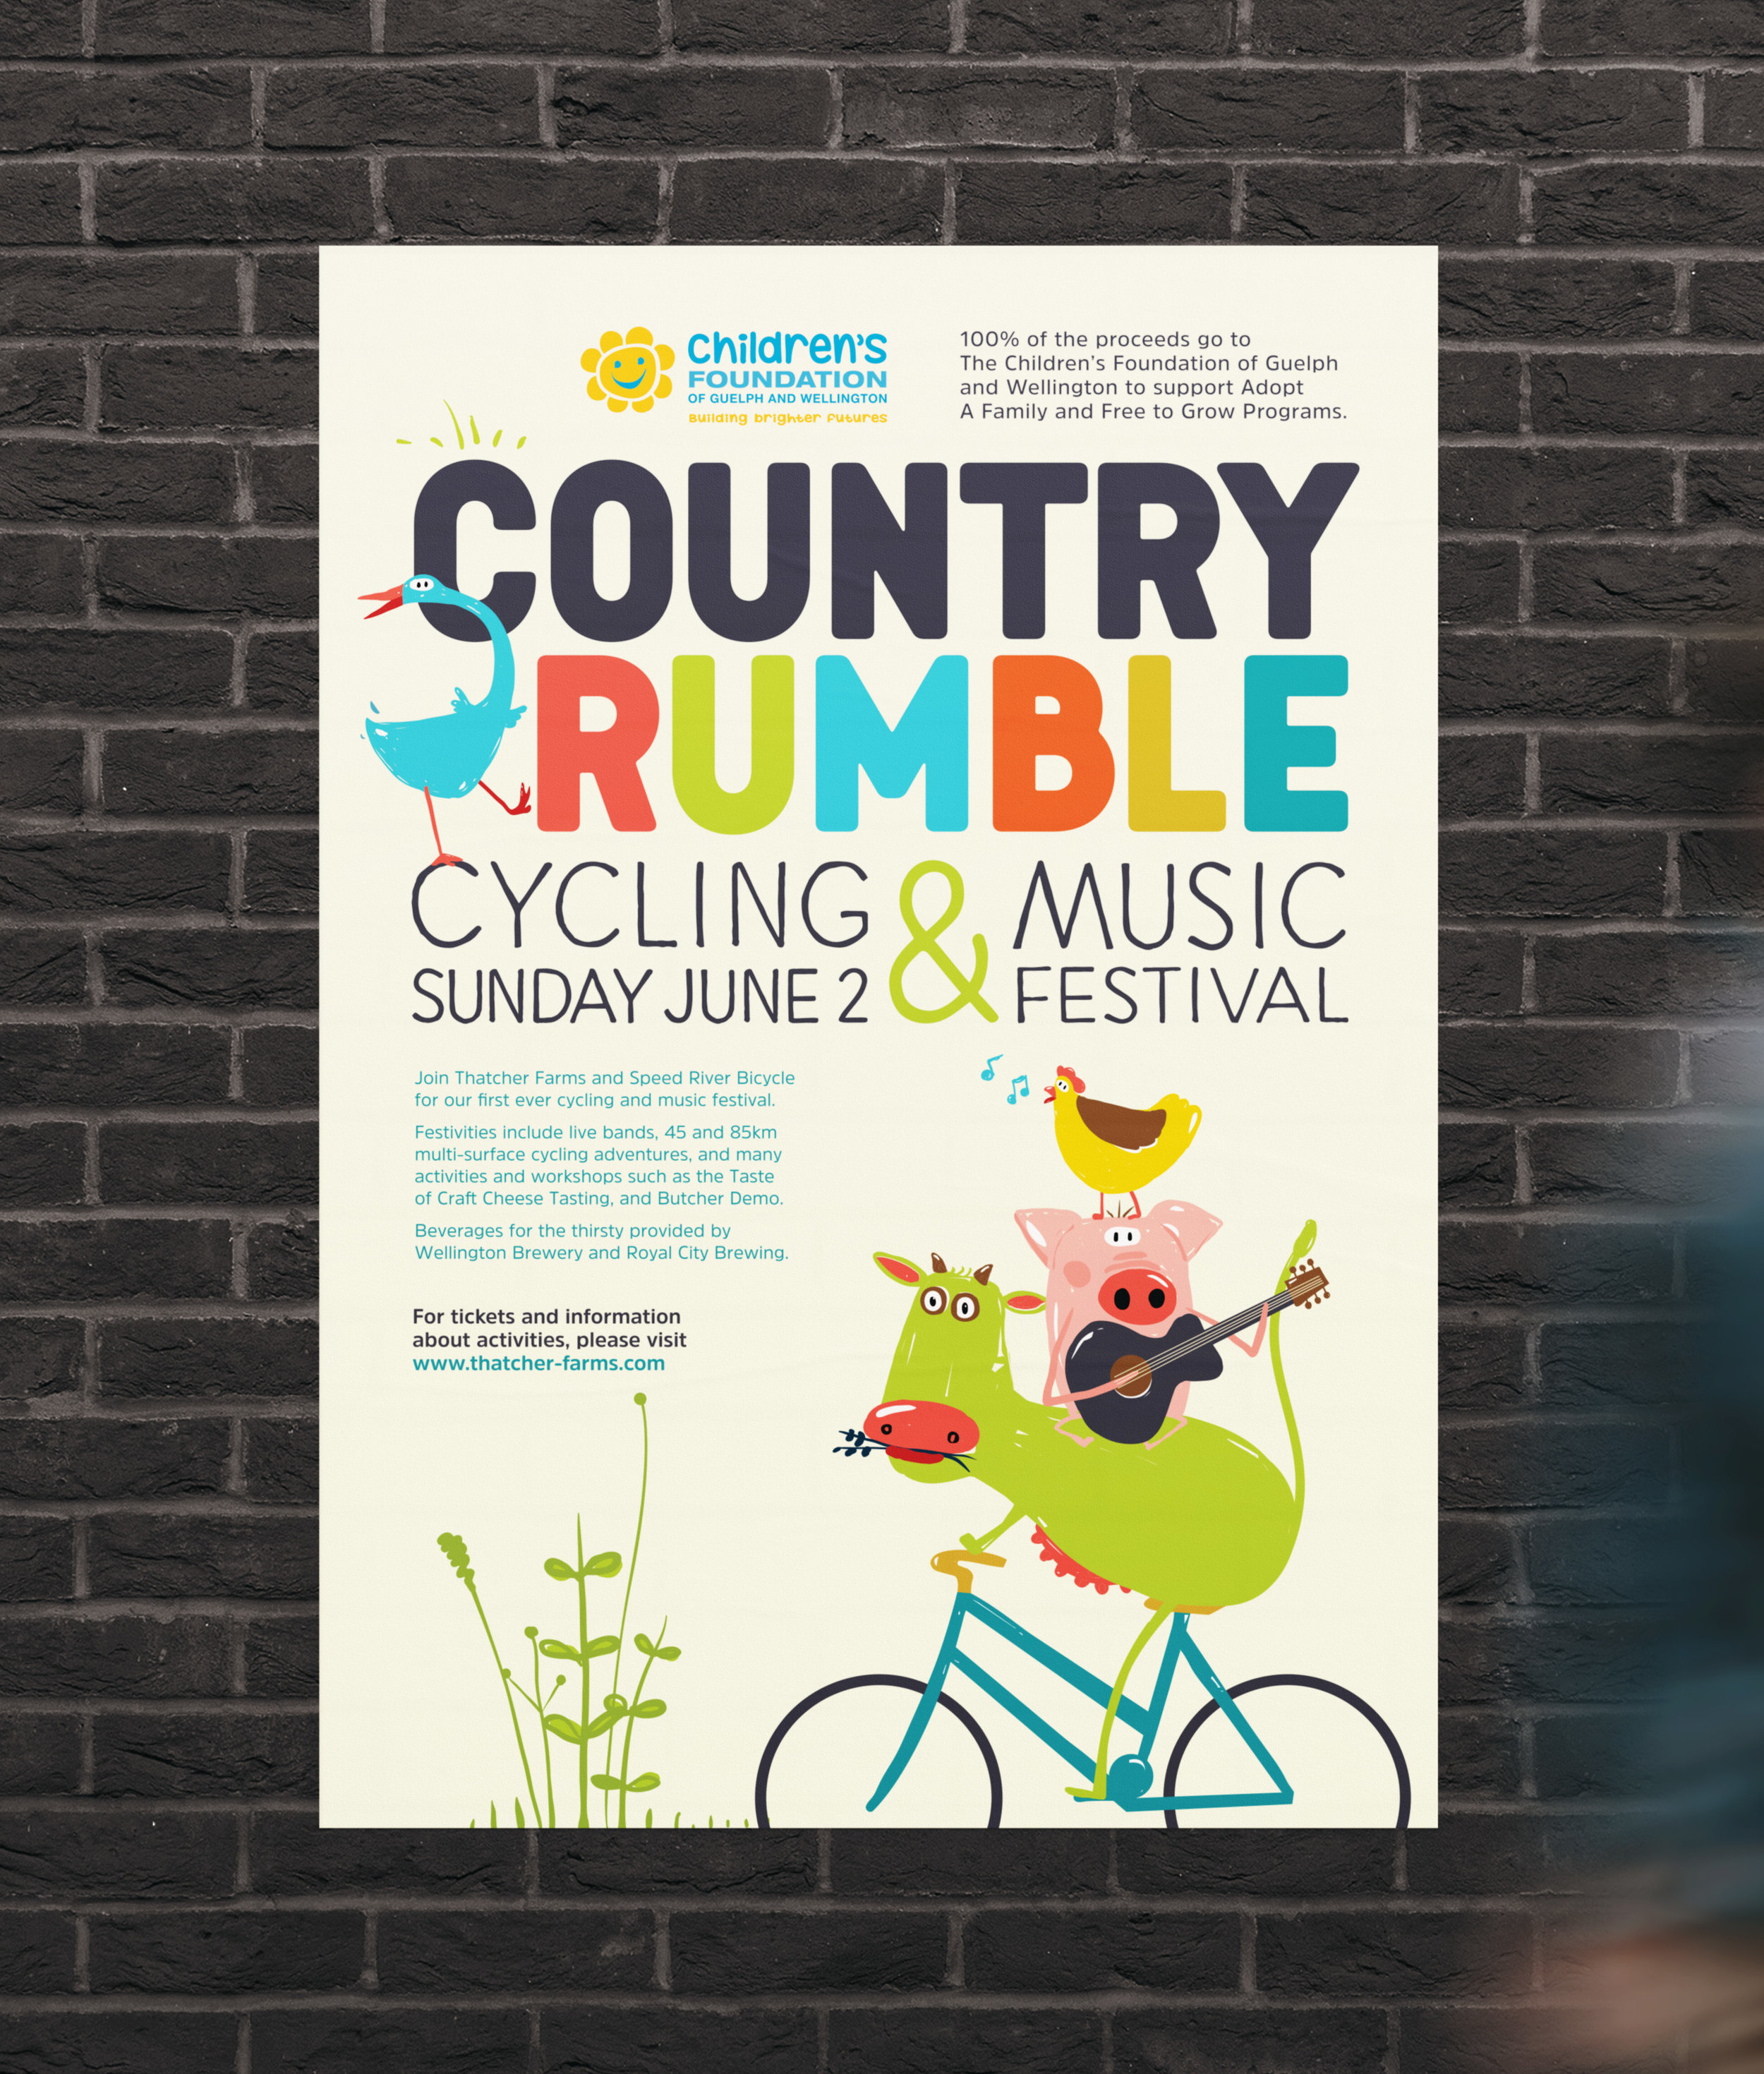 CountryRumble_Ebbnflowcreative_Posterdesign_Illustration.jpg